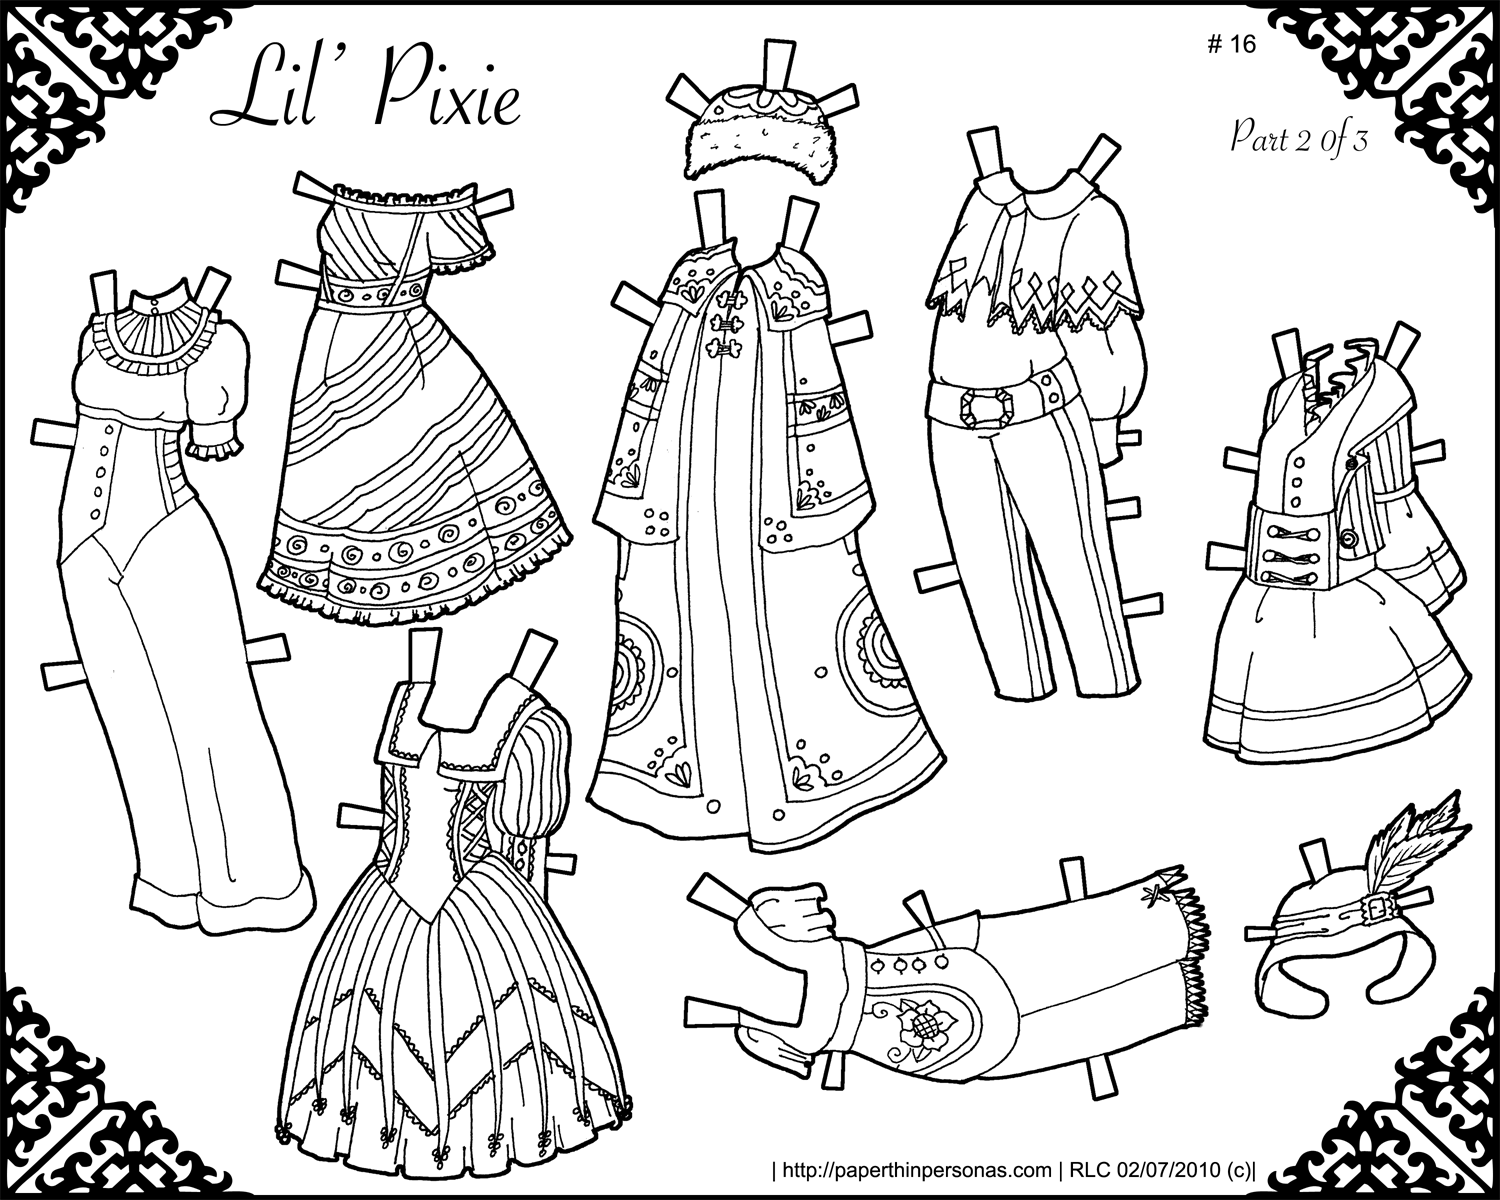 graphic regarding Paper Doll Clothing Printable identified as Small Pixie Printable Paper Doll- The Sequel Paper Slender